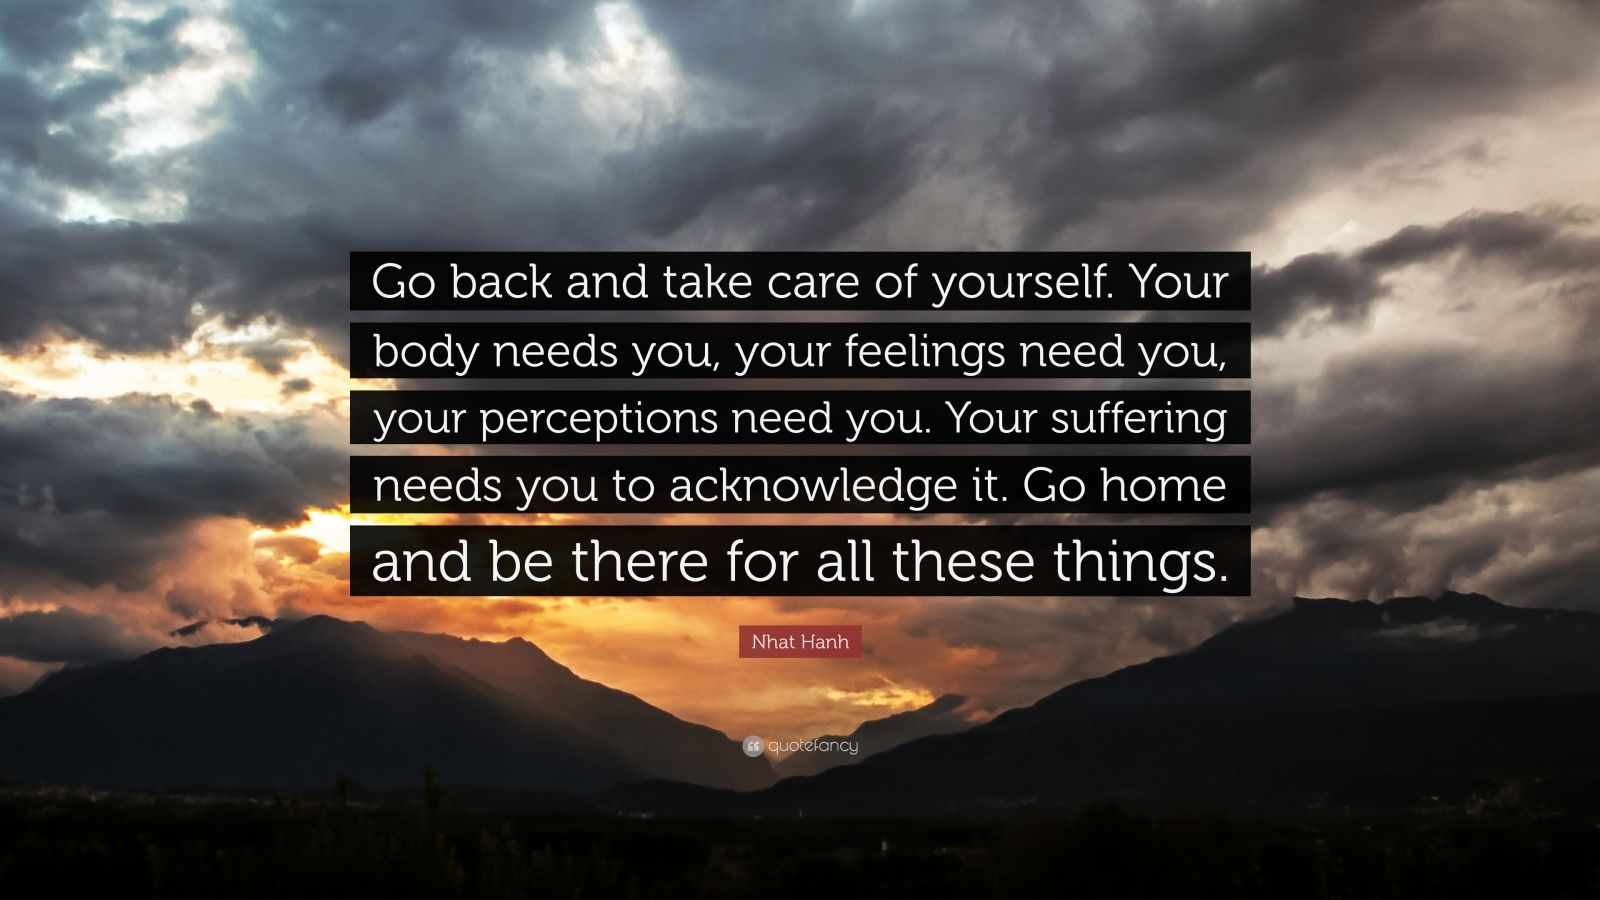 """Nhat Hanh Quote: """"Go back and take care of yourself. Your body needs you, your feelings need you, your perceptions need you. Your suffering needs you to acknowledge it. Go home and be there for all these things."""""""